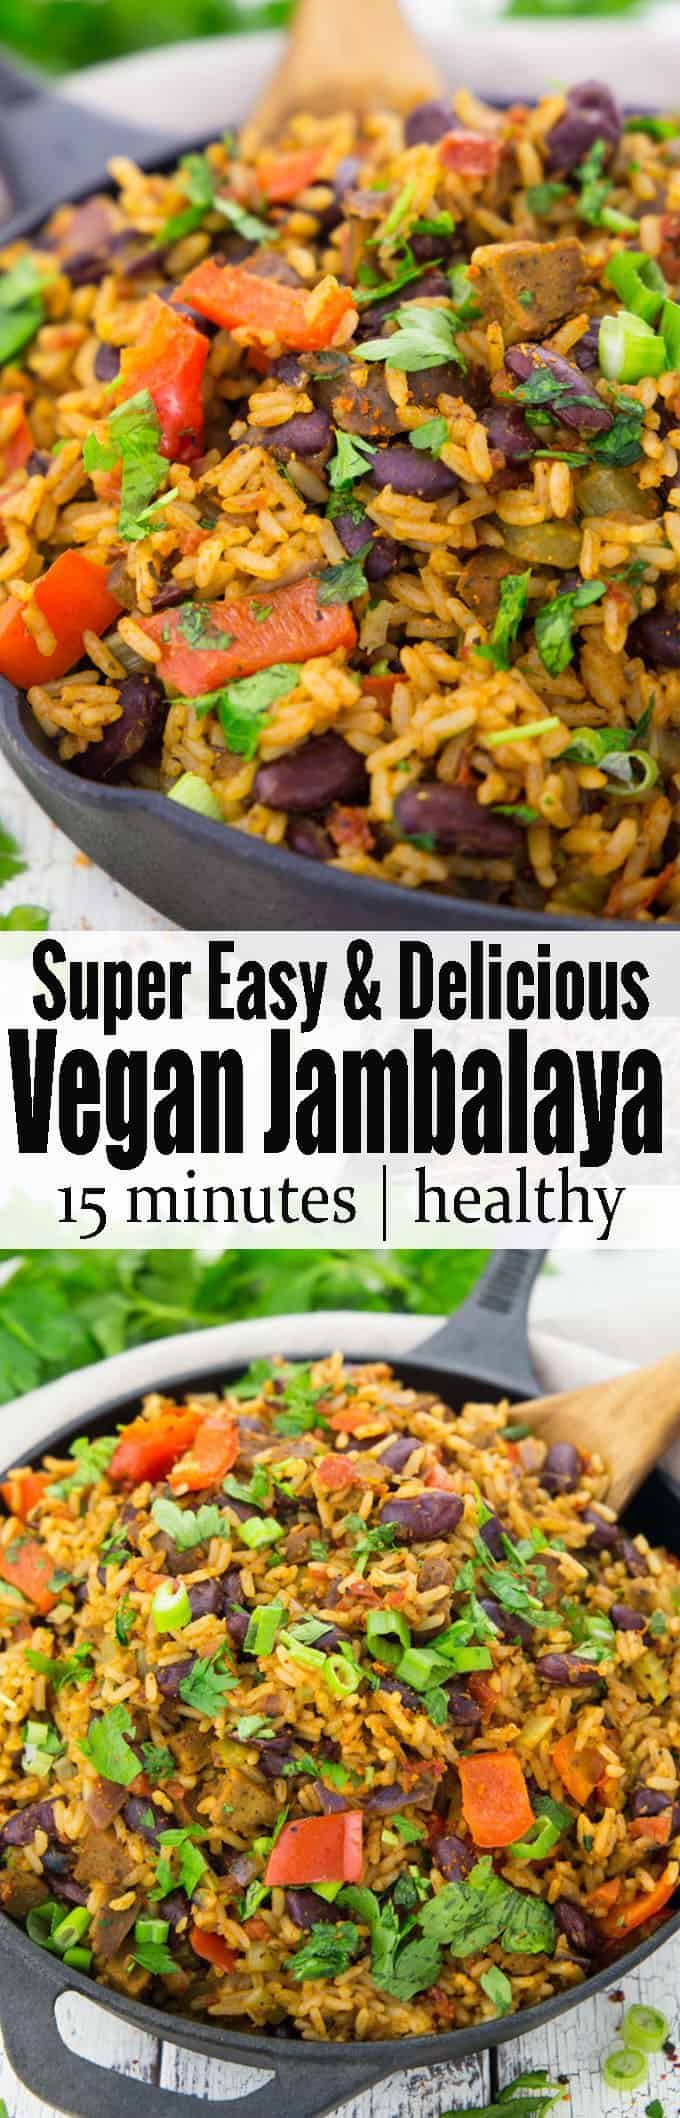 This vegan jambalaya makes the perfect vegan dinner! It's super easy to make and so delicious. It has been one of my favorite vegetarian recipes or recipes with rice for a long time. Find more vegan recipes at veganheaven.org!